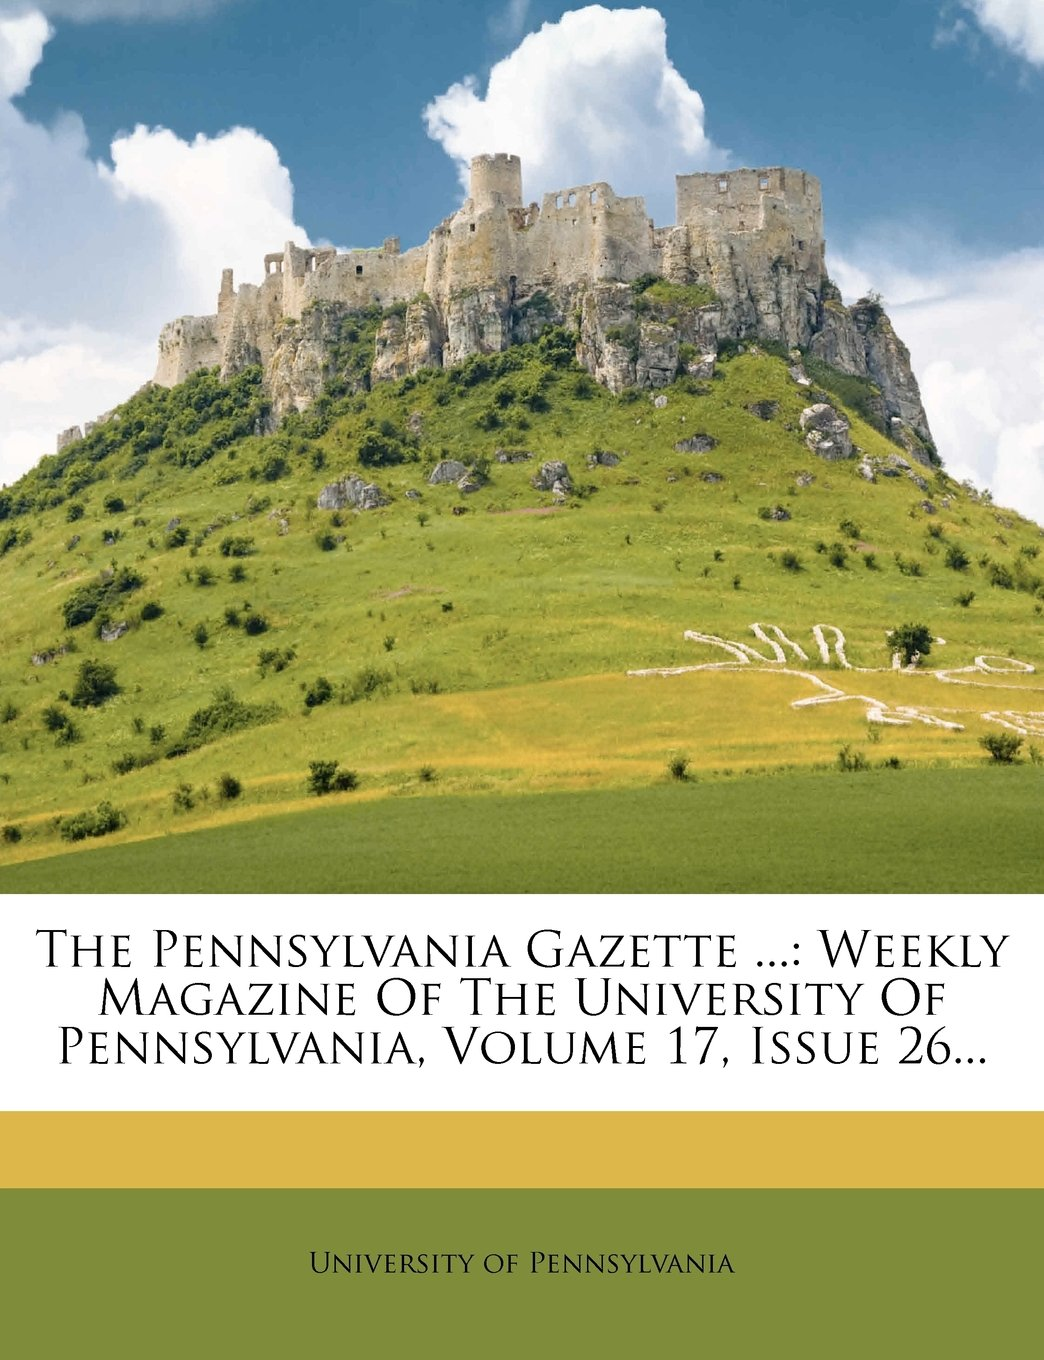 The Pennsylvania Gazette ...: Weekly Magazine Of The University Of Pennsylvania, Volume 17, Issue 26... pdf